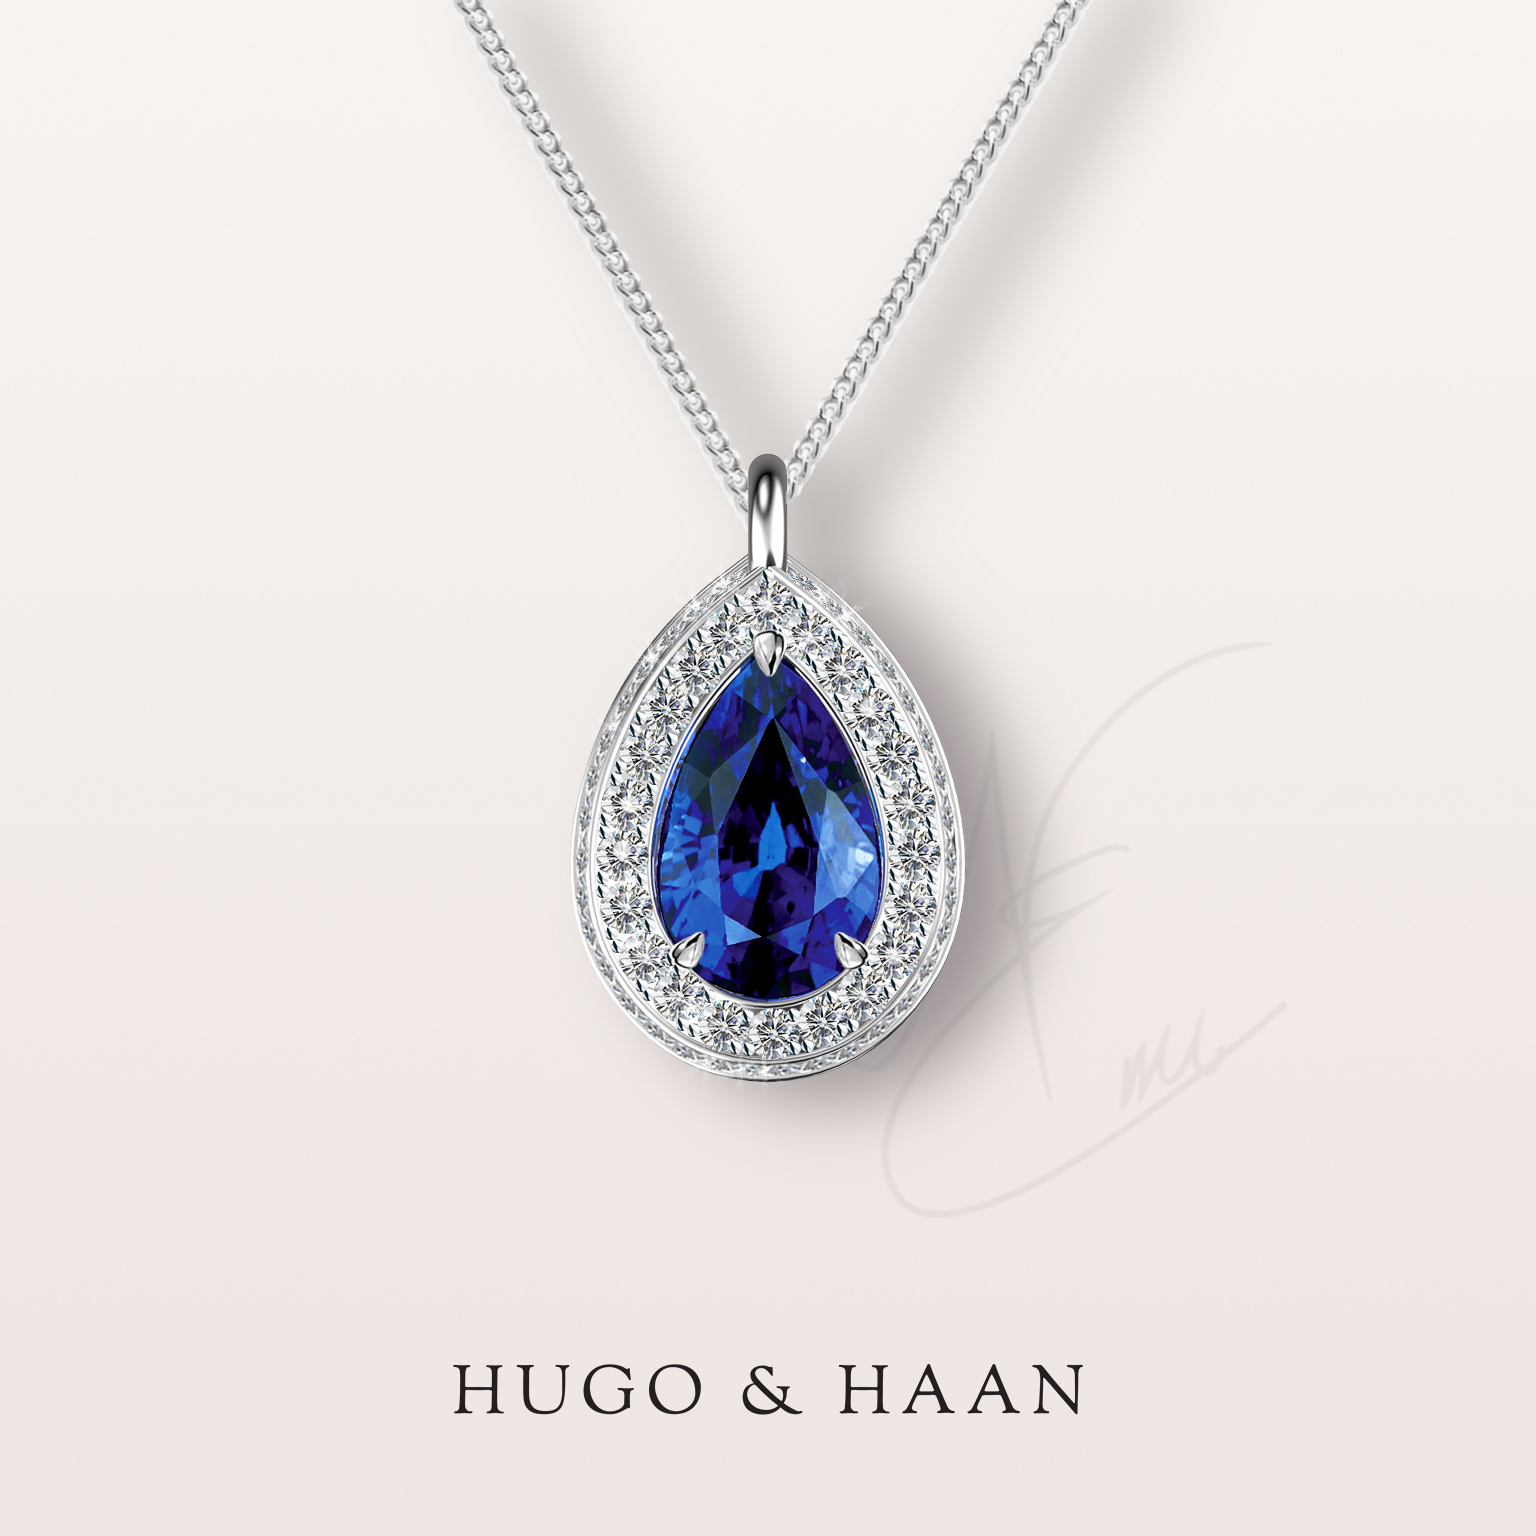 A gift to remember - One of our clients has approached us for a special birthday present. He knew he wanted a pendant and soon fell head over heels for a pear cut blue sapphire Emi showed him from a recent trip to France.